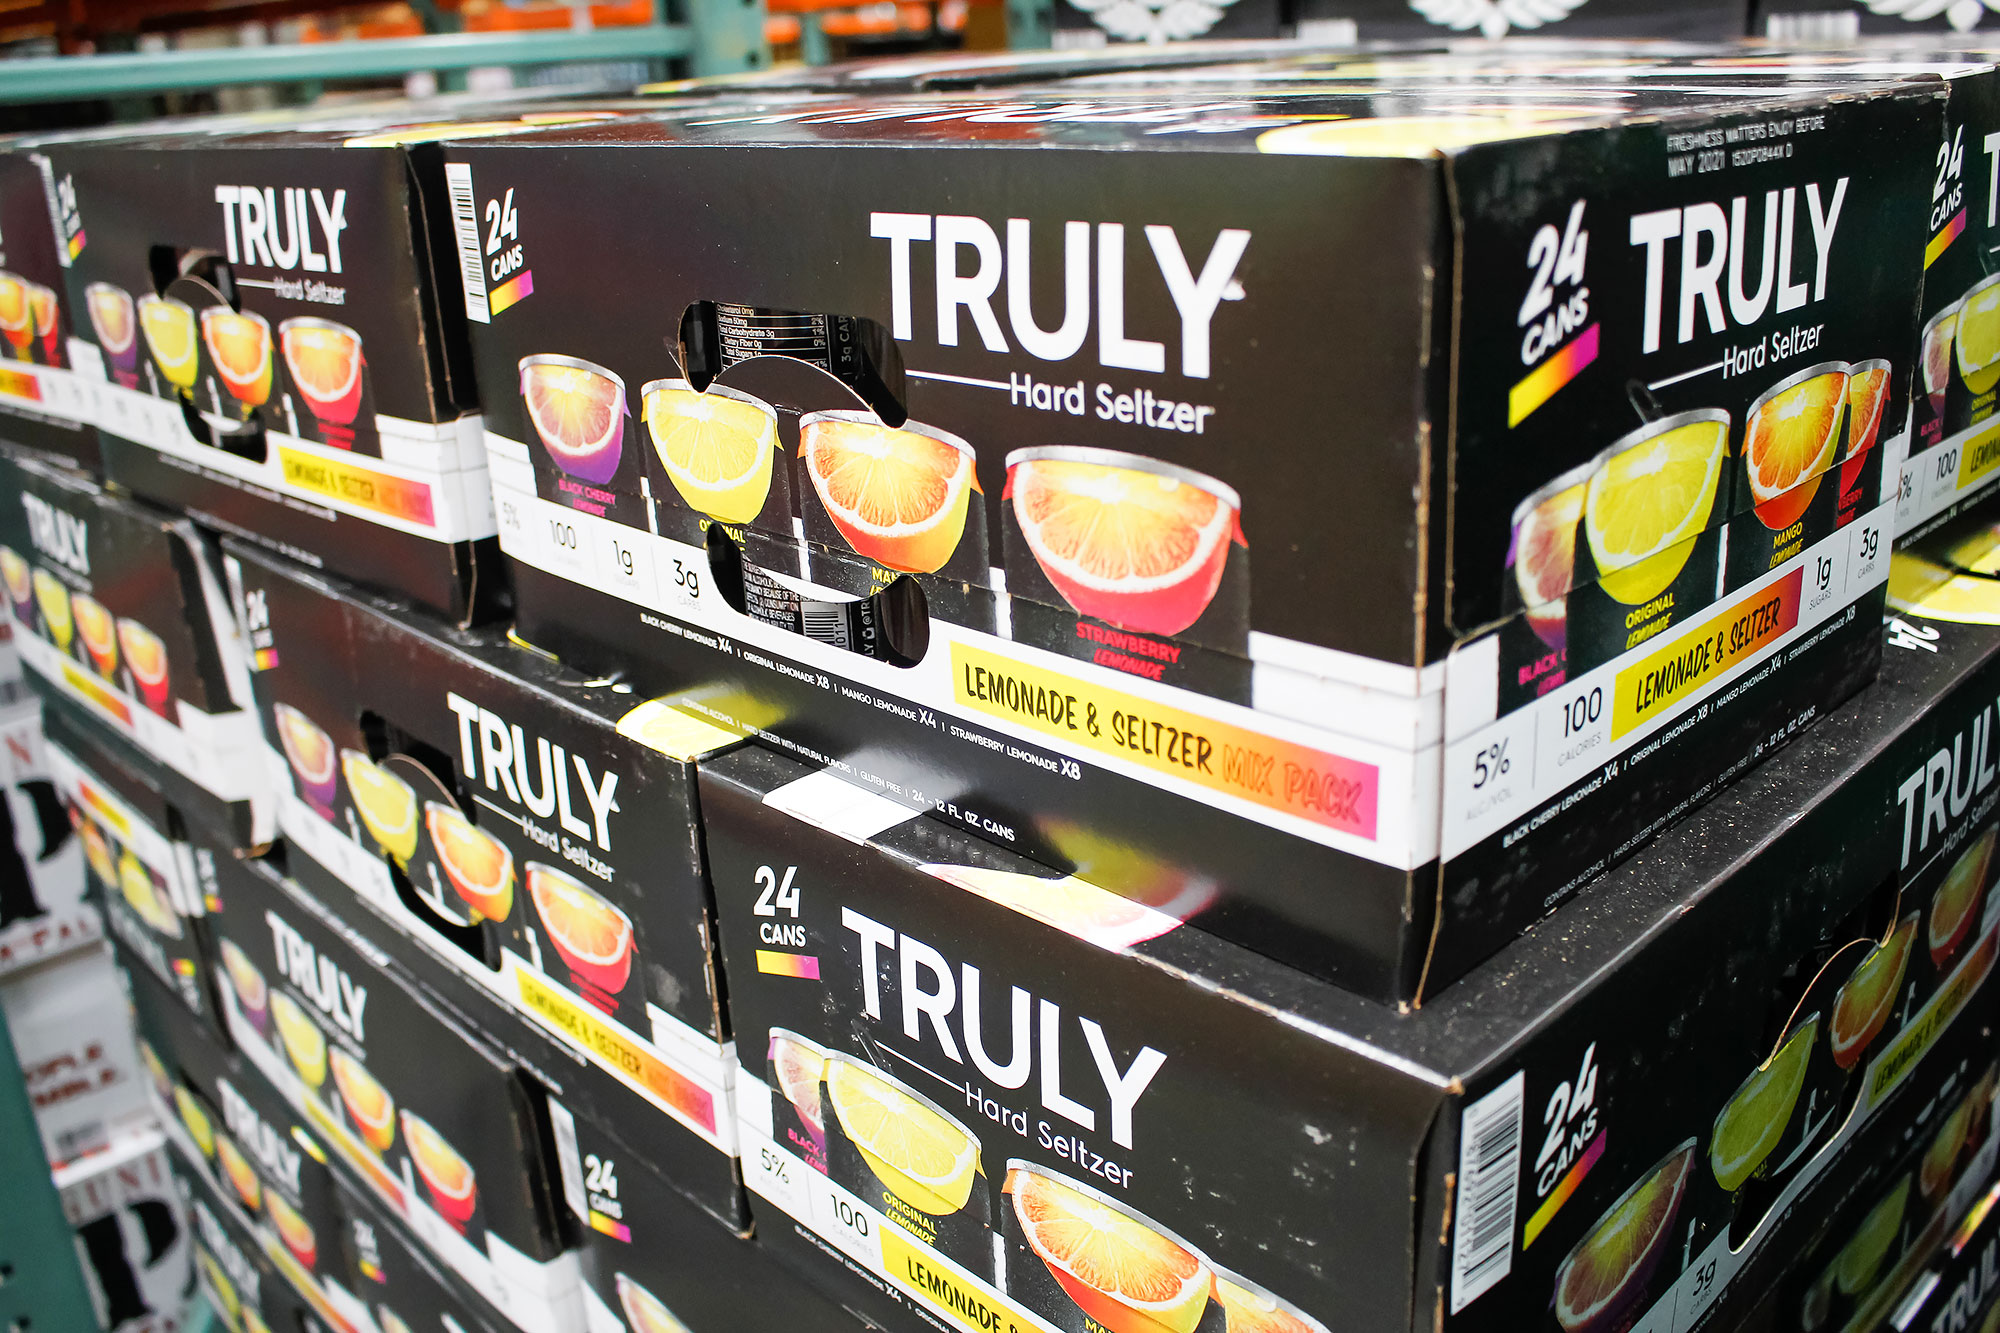 Cases of Truly Hard Seltzer